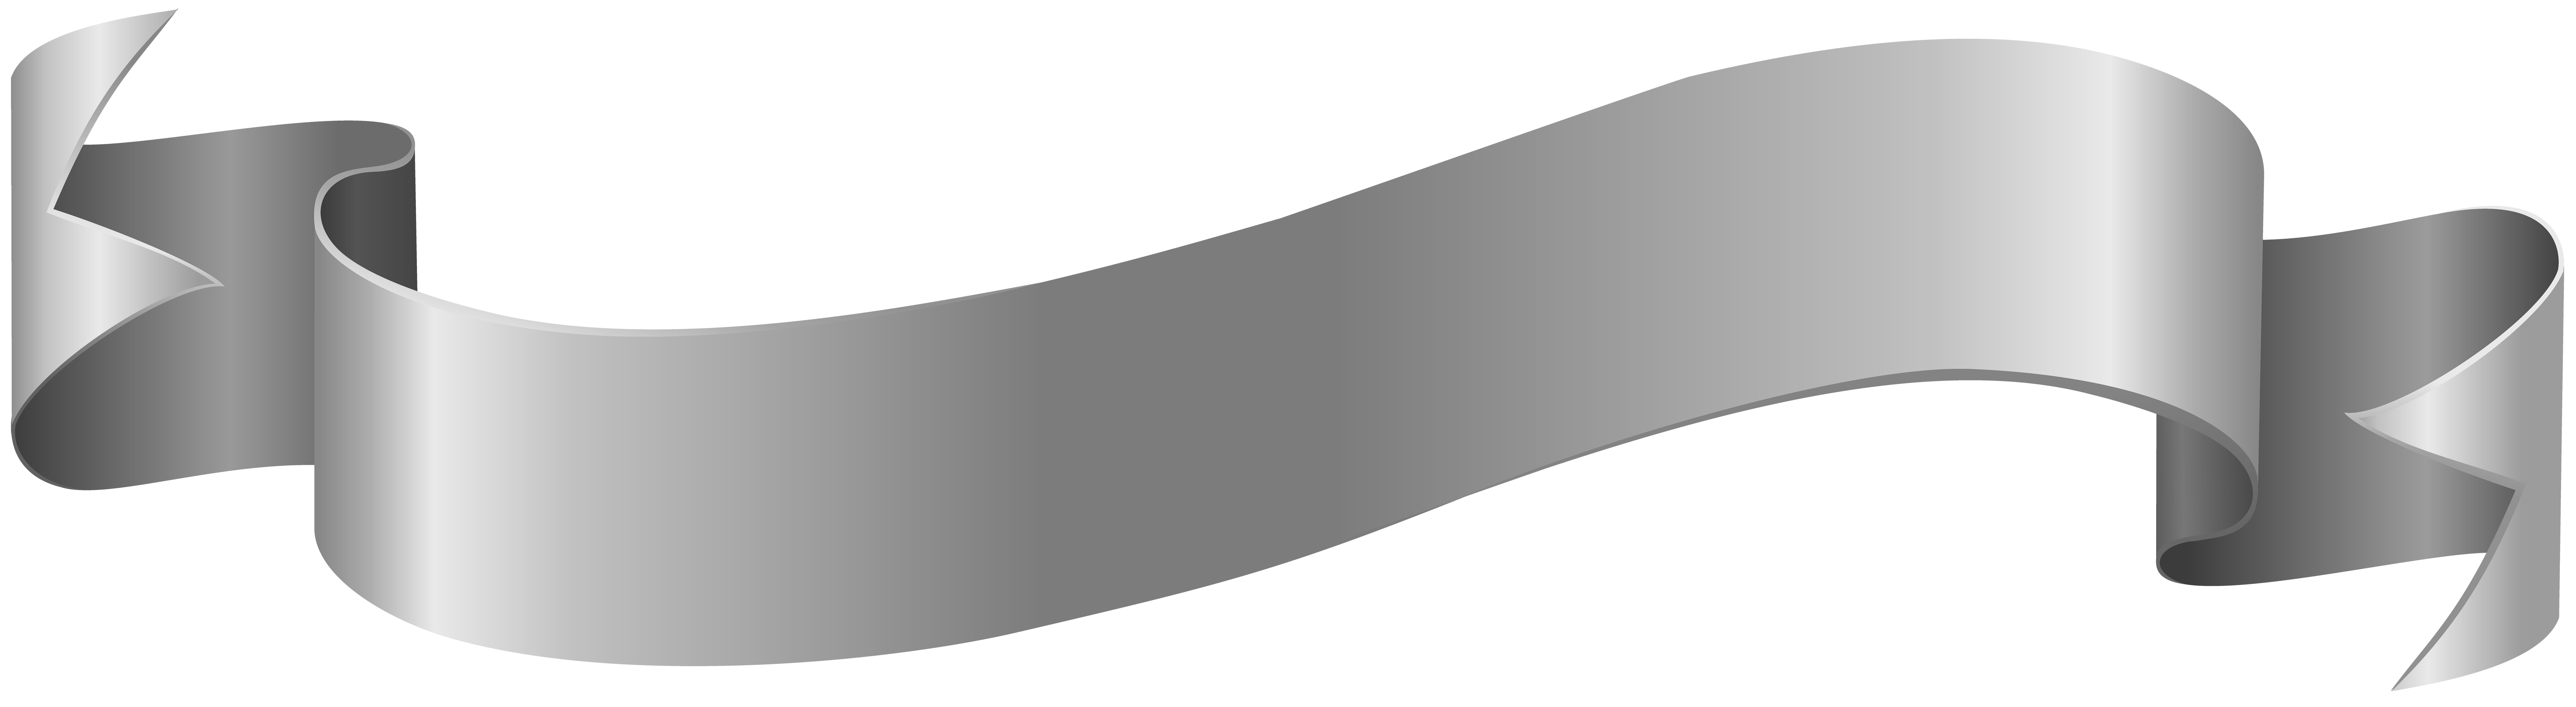 gray banner png